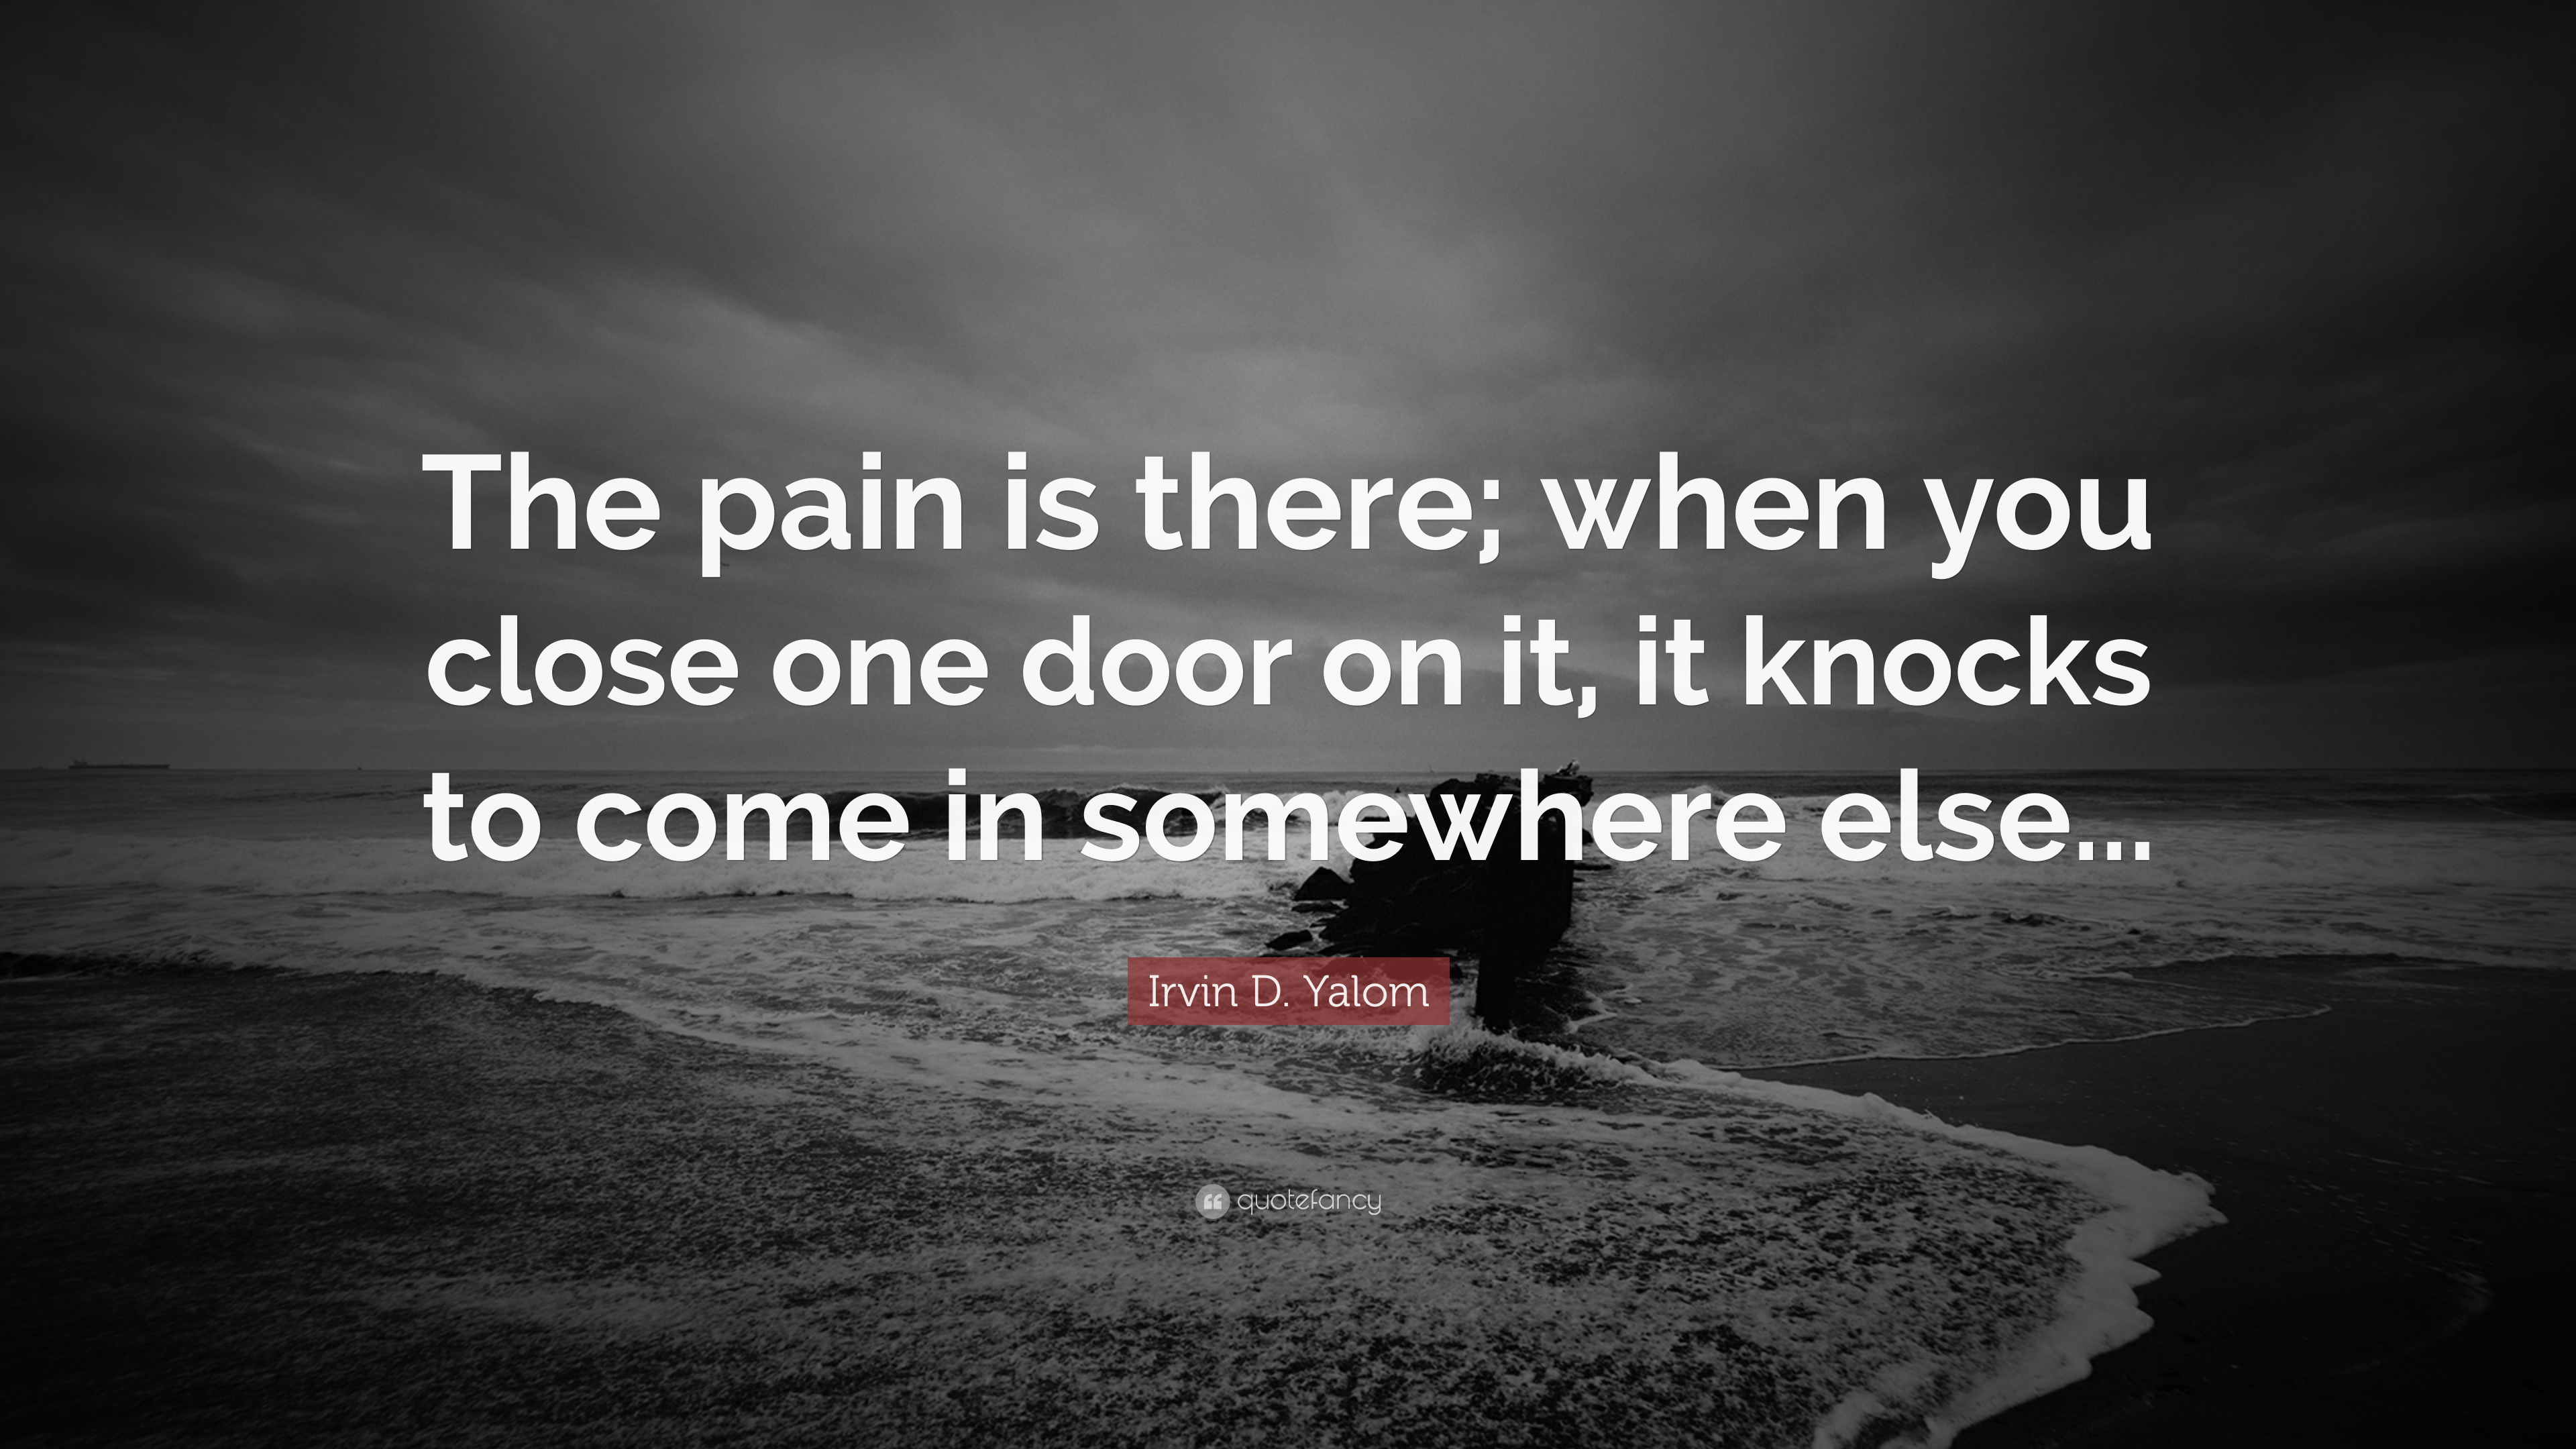 Charming Irvin D. Yalom Quote: U201cThe Pain Is There; When You Close One